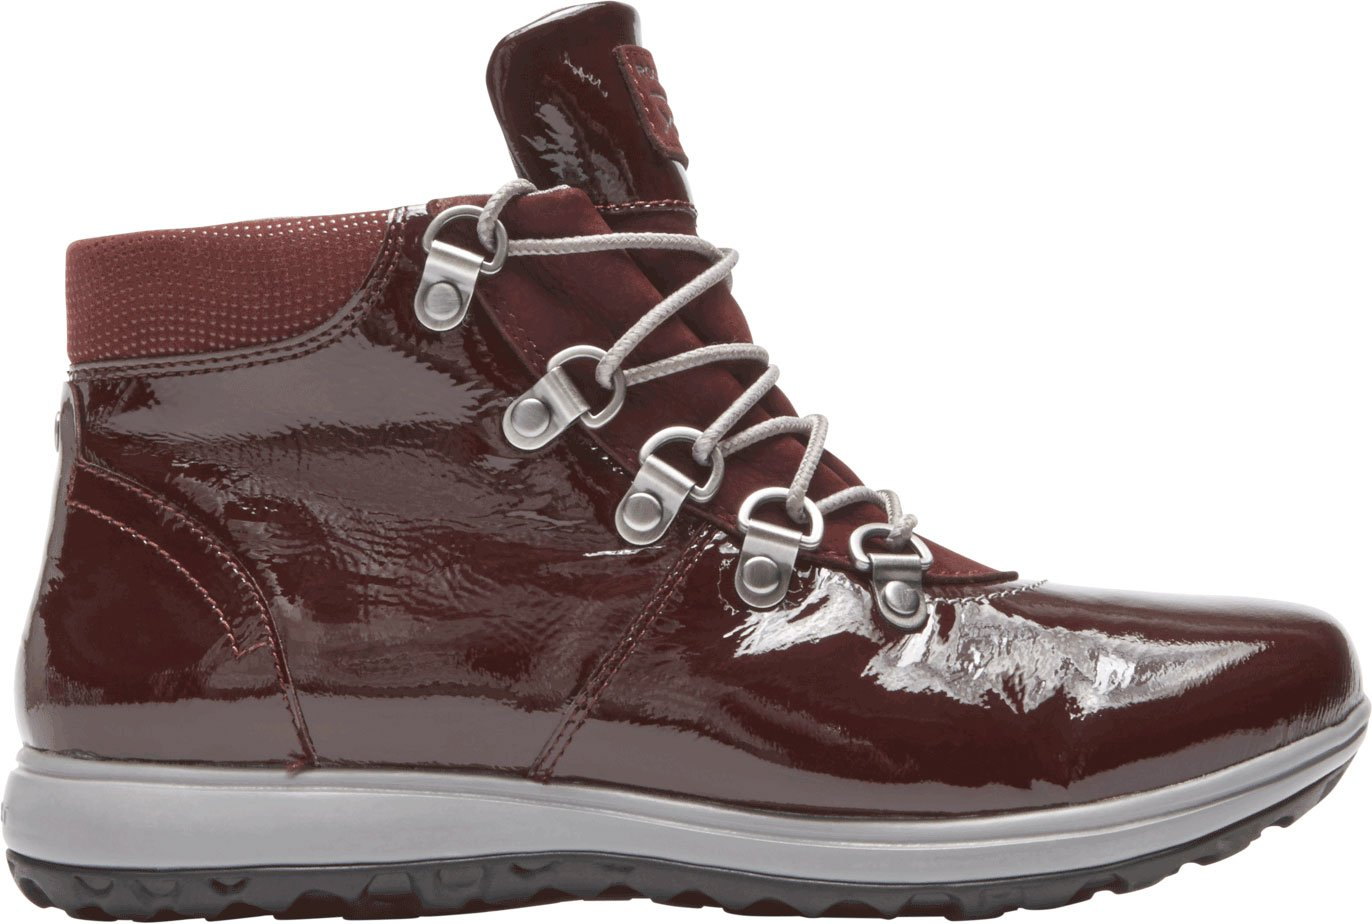 Rockport Women's XCS Britt Alpine Snow Boot B01NB0E77M 8.5 B(M) US|Merlot